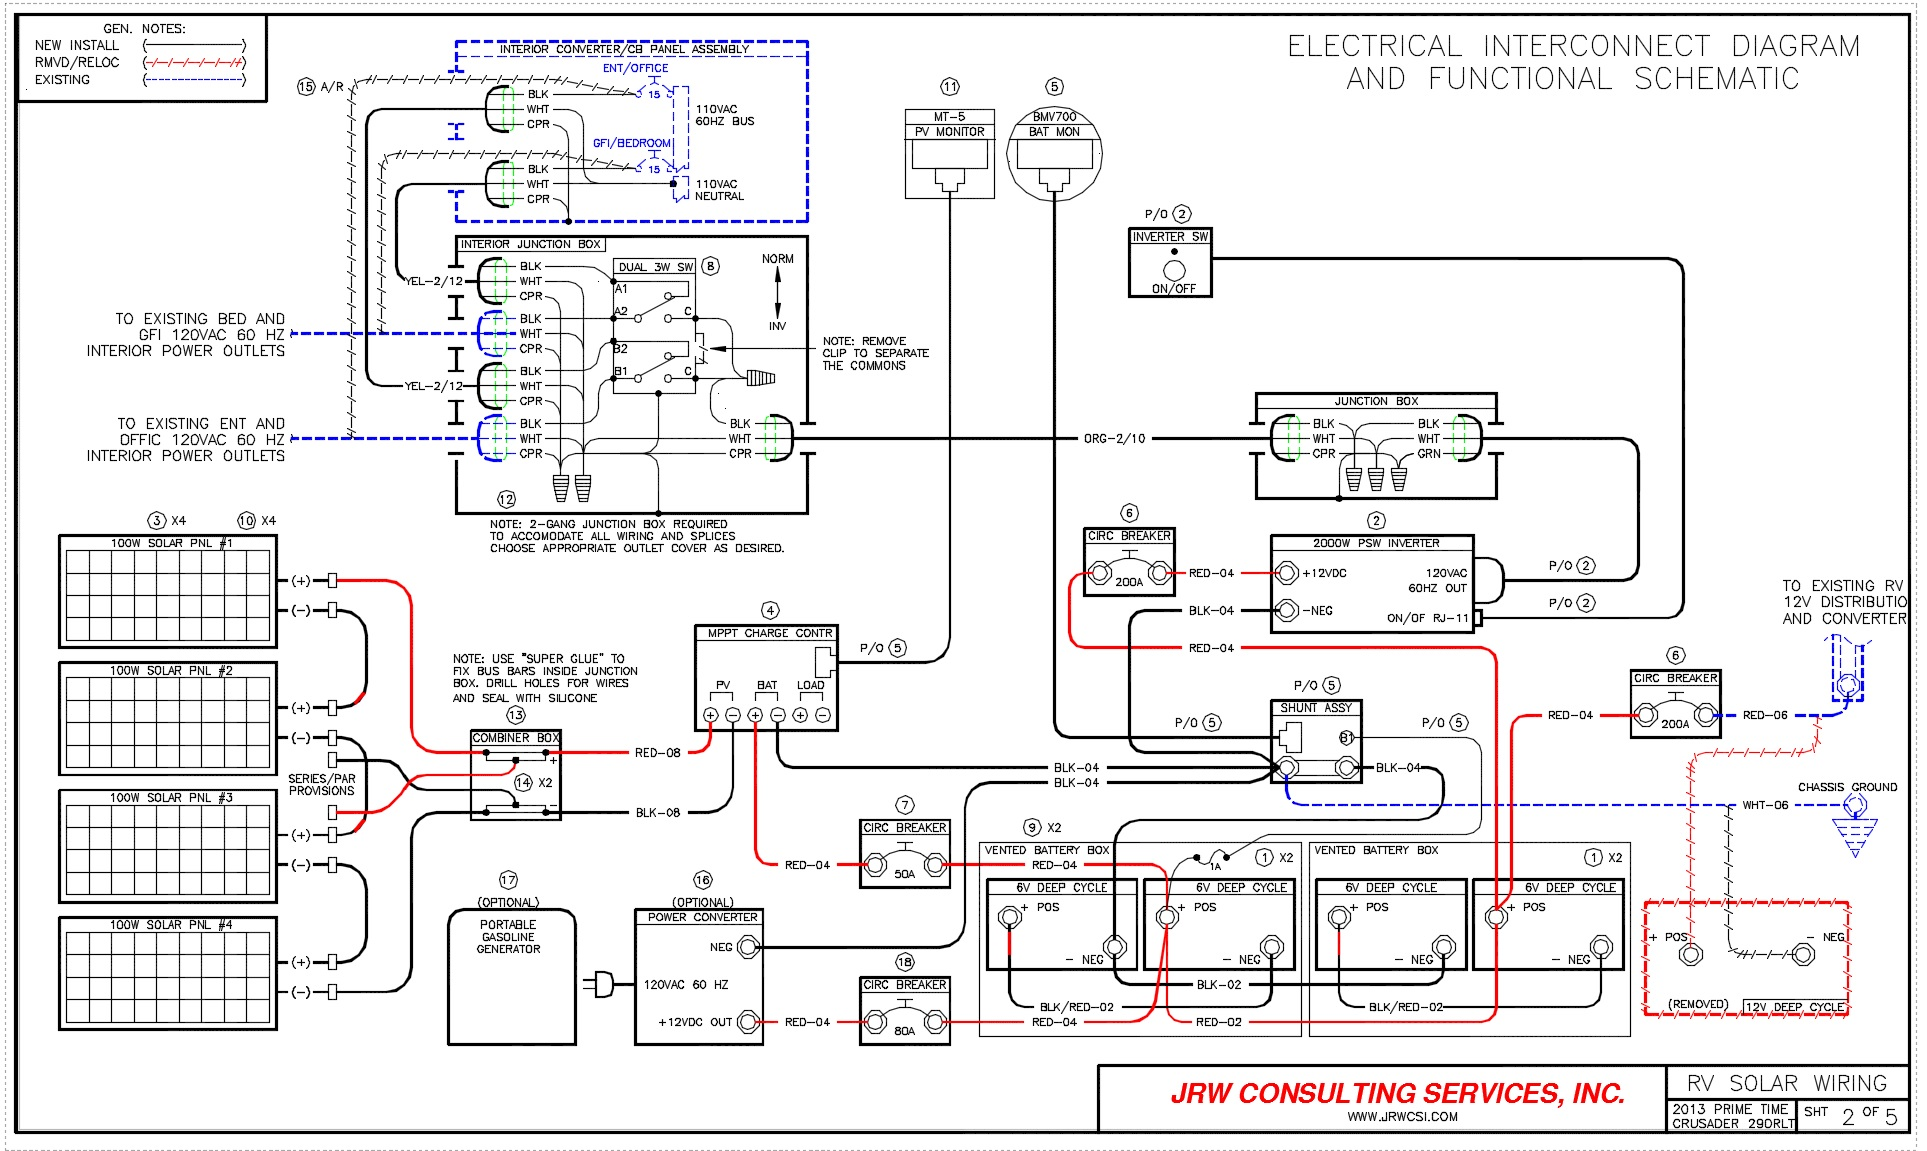 RV SOLAR SHT 22 rv converter wiring diagram travel trailer power wiring diagram rv power converter wiring diagrams at creativeand.co